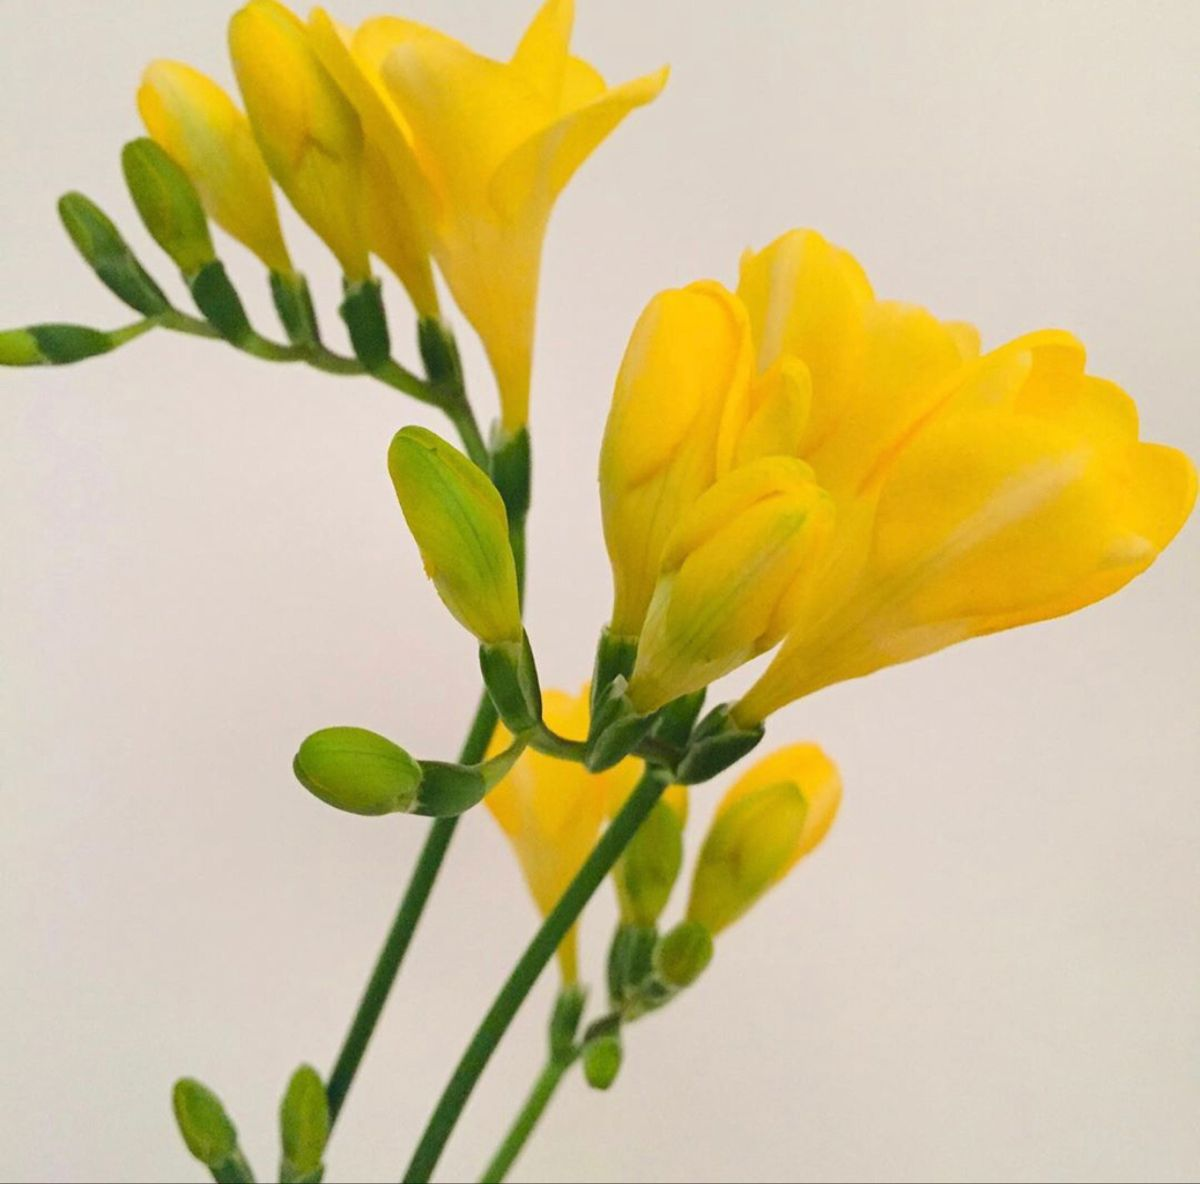 Freesia Flower In 2020 Freesia Flowers Flowers For Sale Wholesale Fresh Flowers